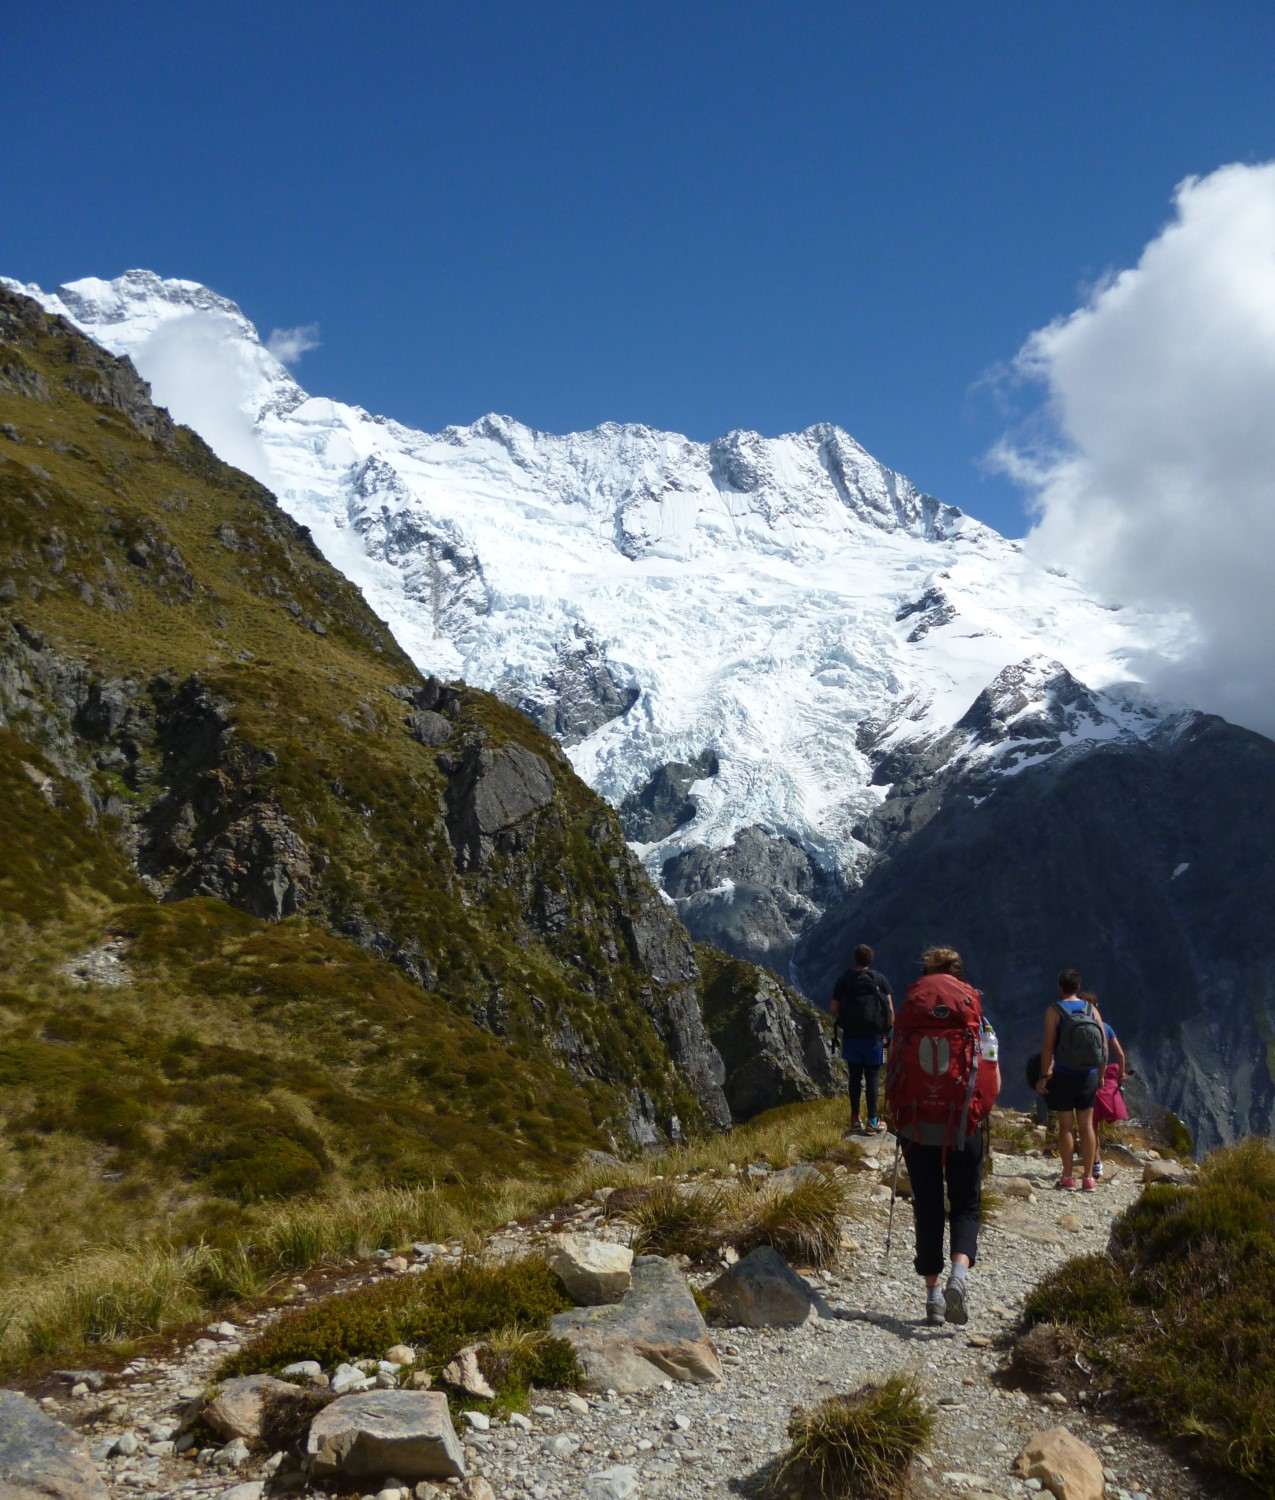 Tramping (?) our way to Mueller Hut in the Mt Cook / Aoraki National Park in New Zealand.